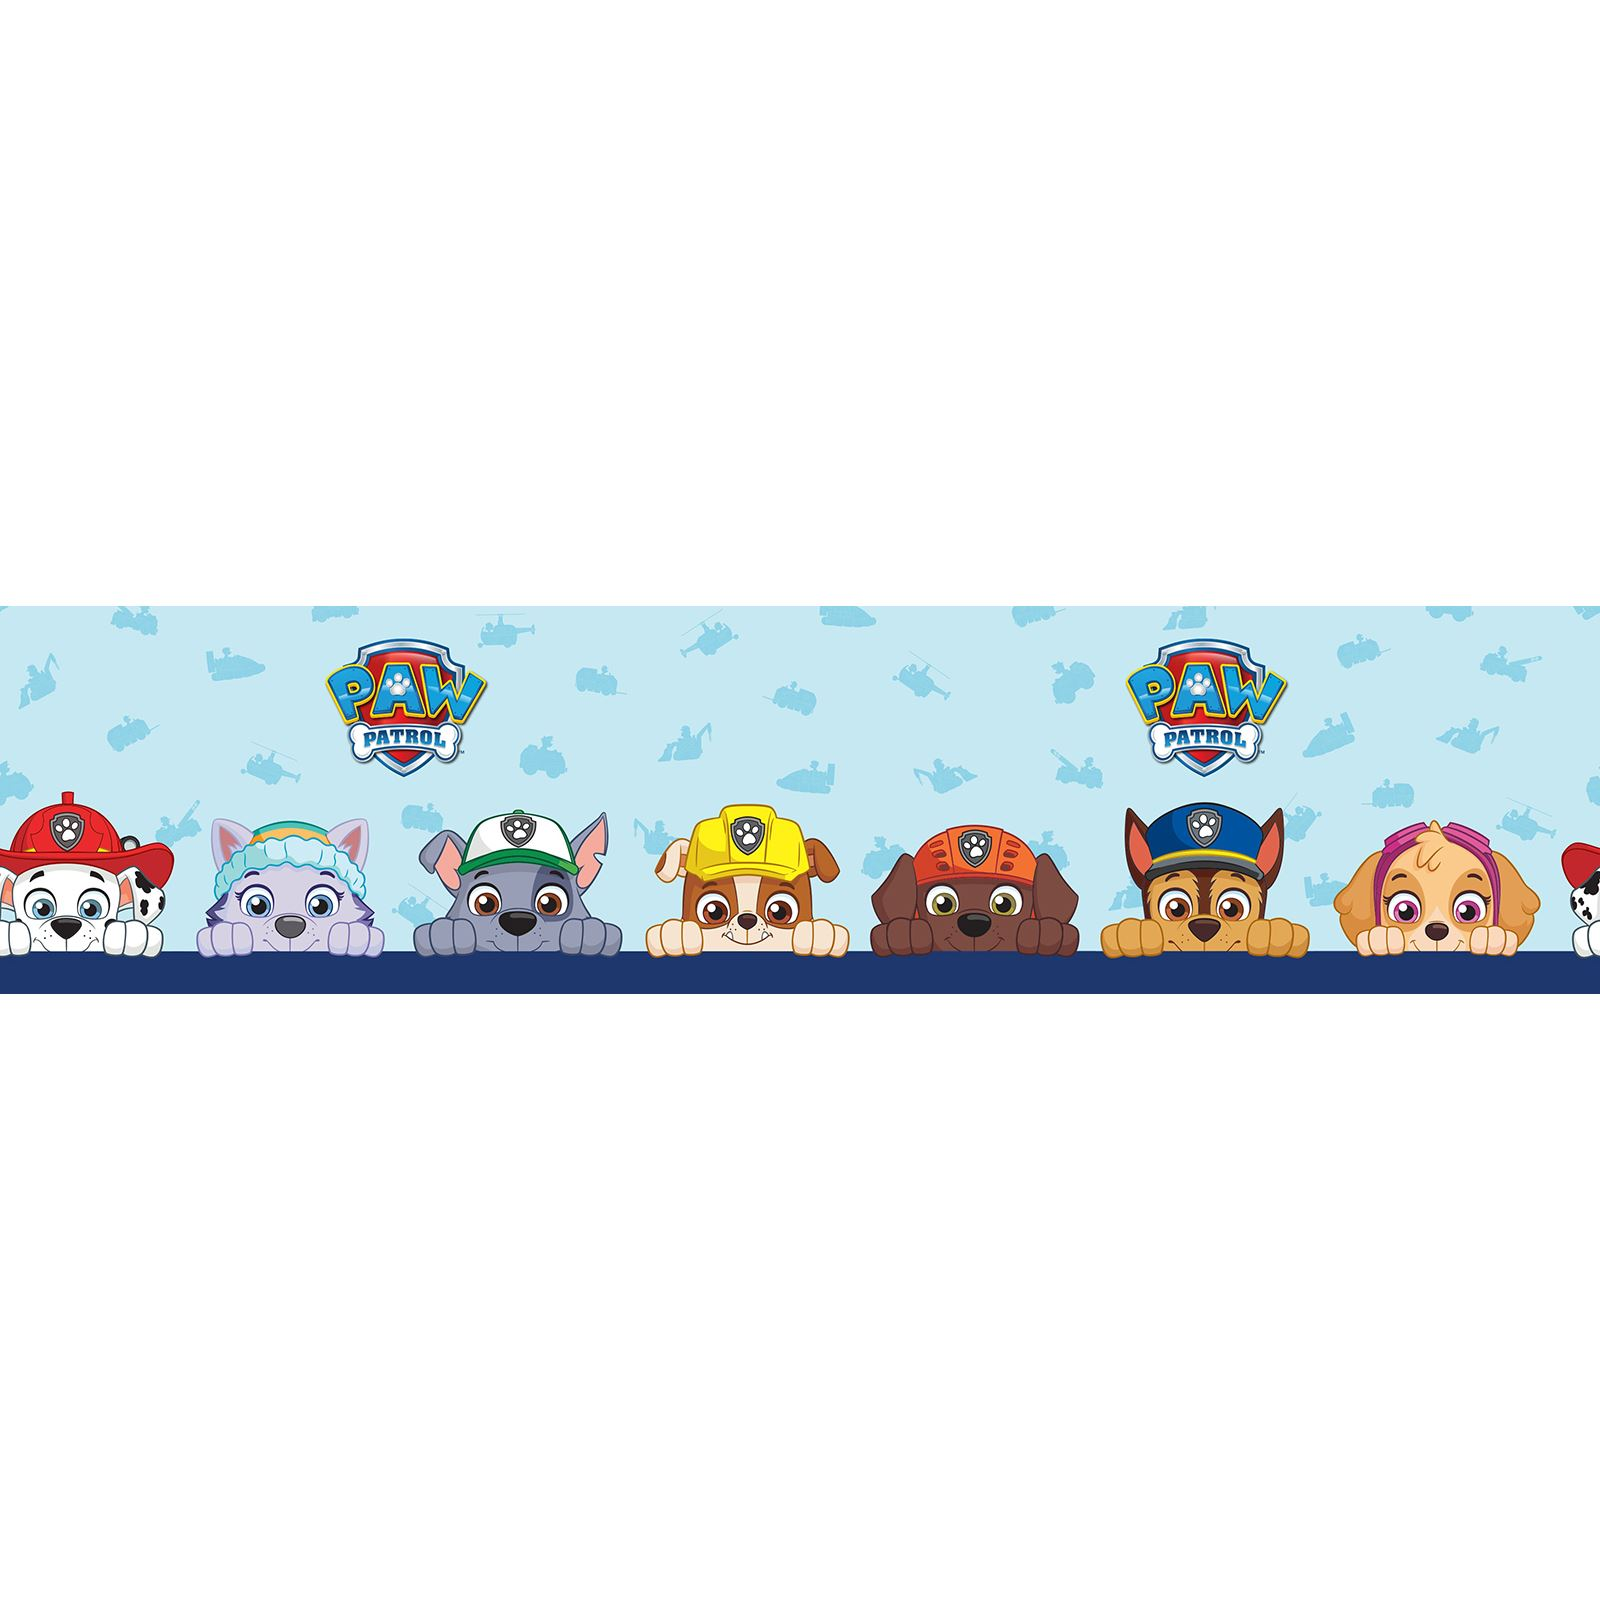 Details about OFFICIAL PAW PATROL SELF ADHESIVE WALLPAPER BORDER 5M LONG  CHILDRENS BEDROOM